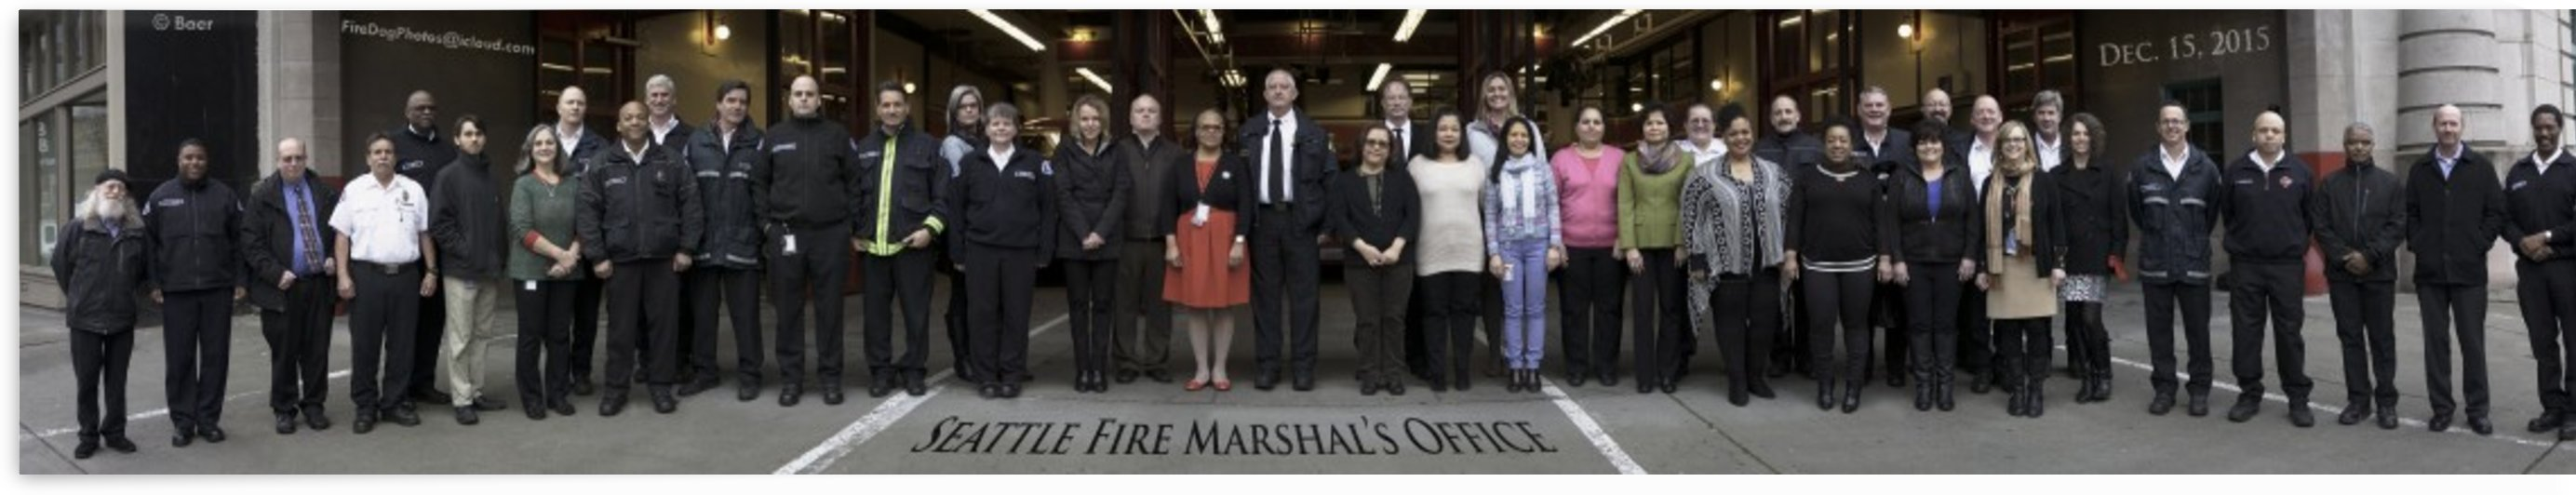 Seattle Fire Department Fire Marshal's Office 2015 by Steve